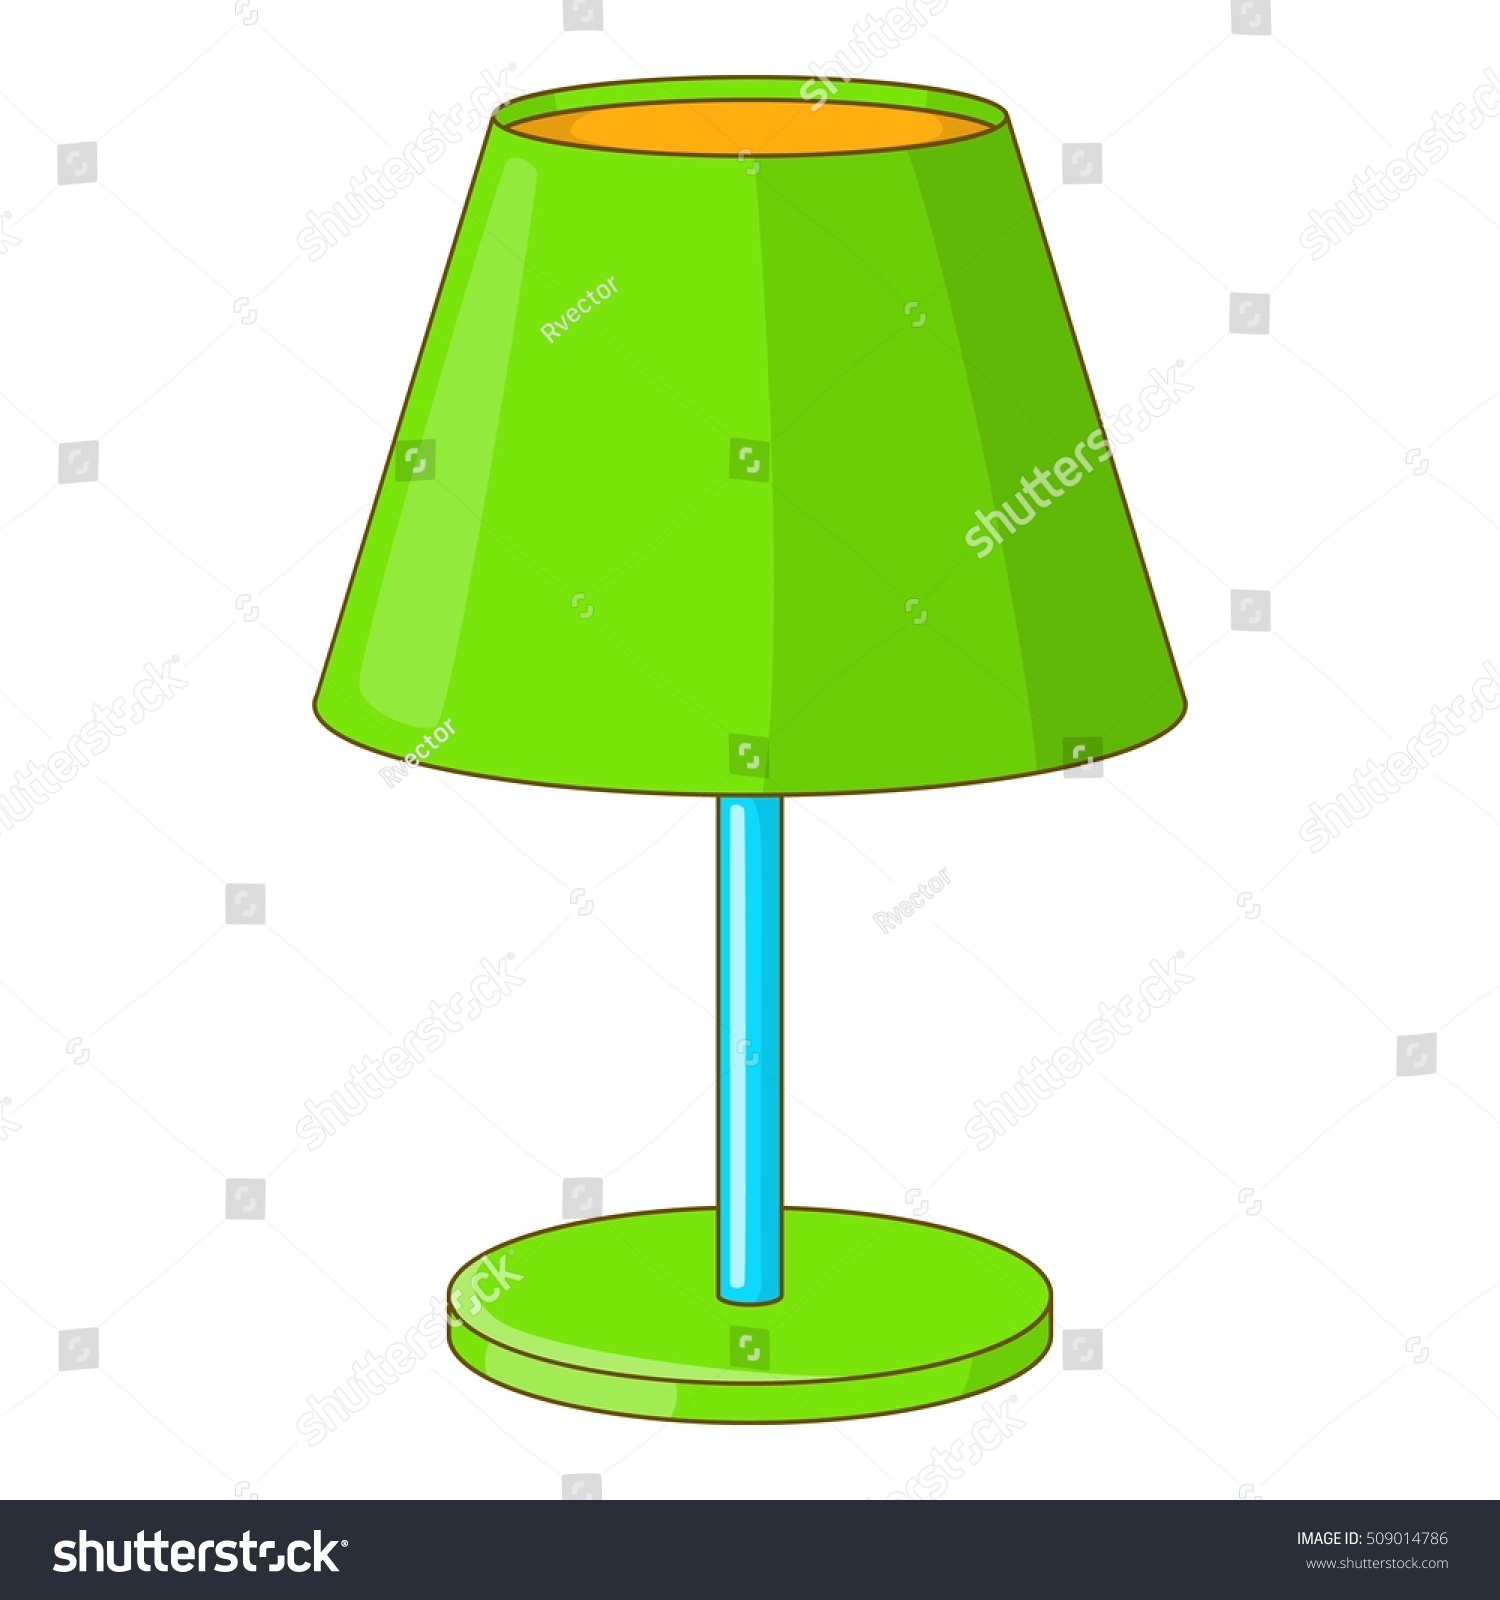 banker all classic bankers replace brass lamp shade lighting glass with images green desk lamps replacement design accountant